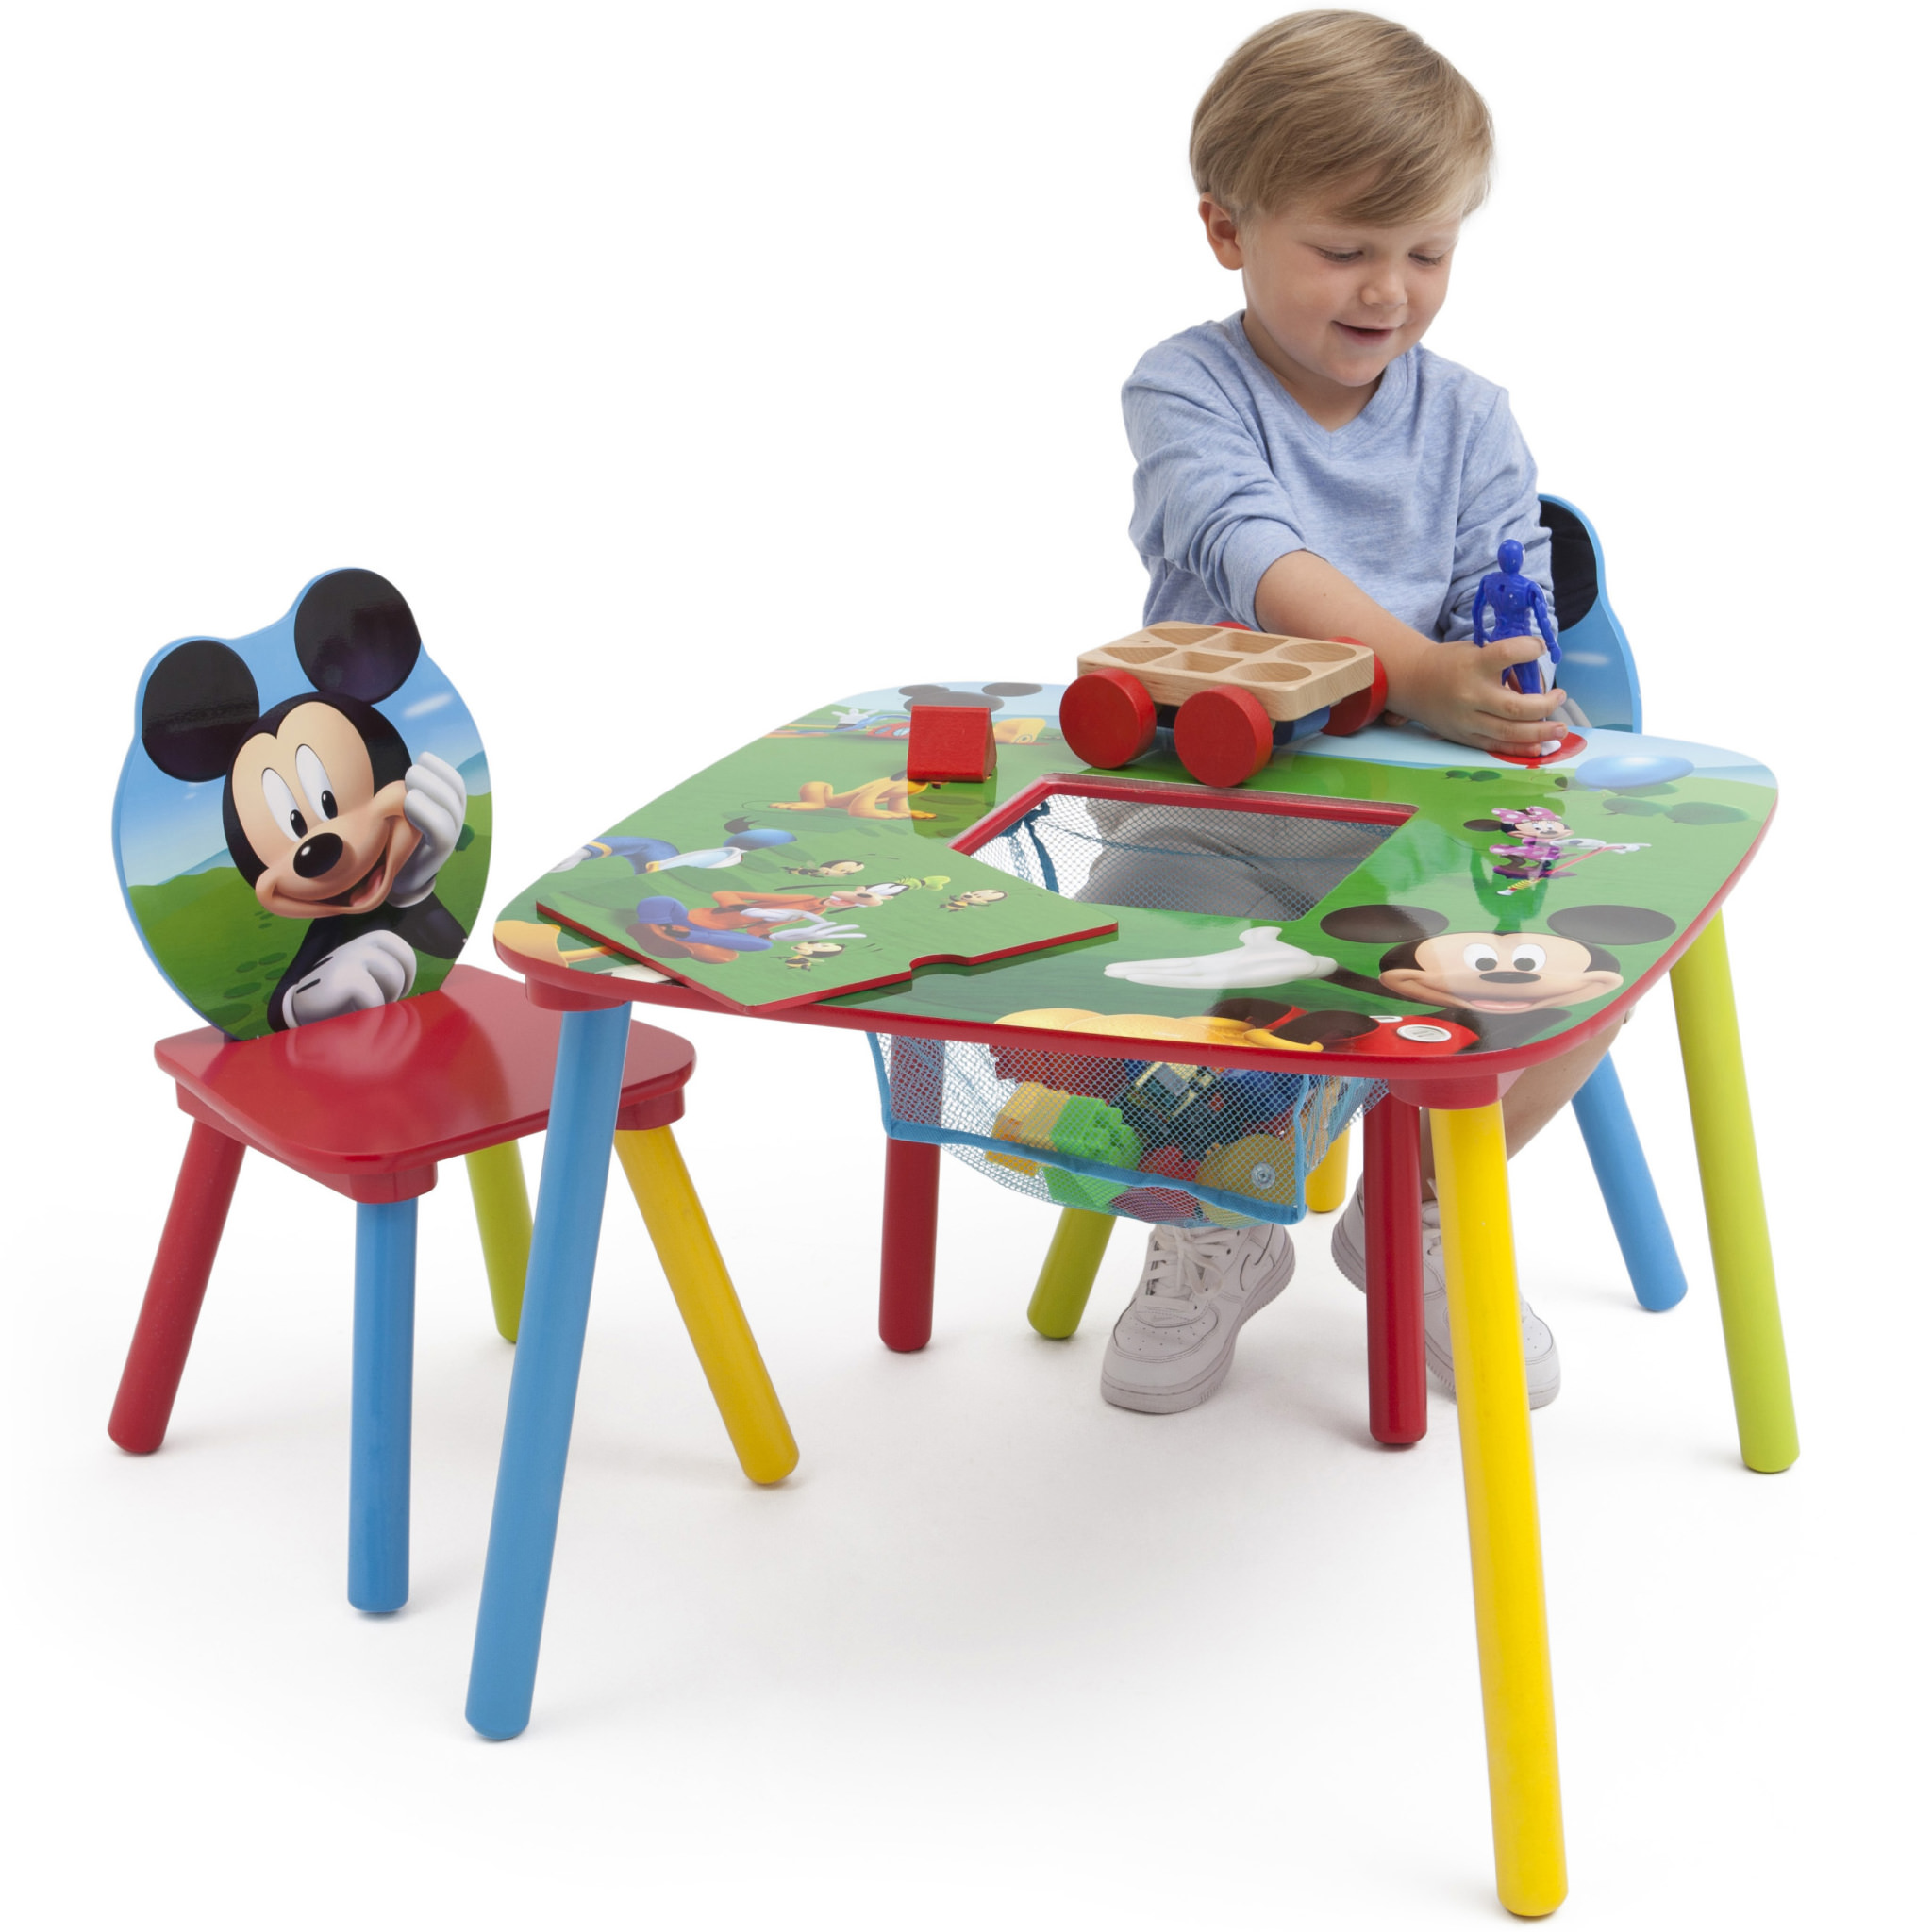 Mickey Mouse Toddler Table and Chair Set with Storage - Walmart.com